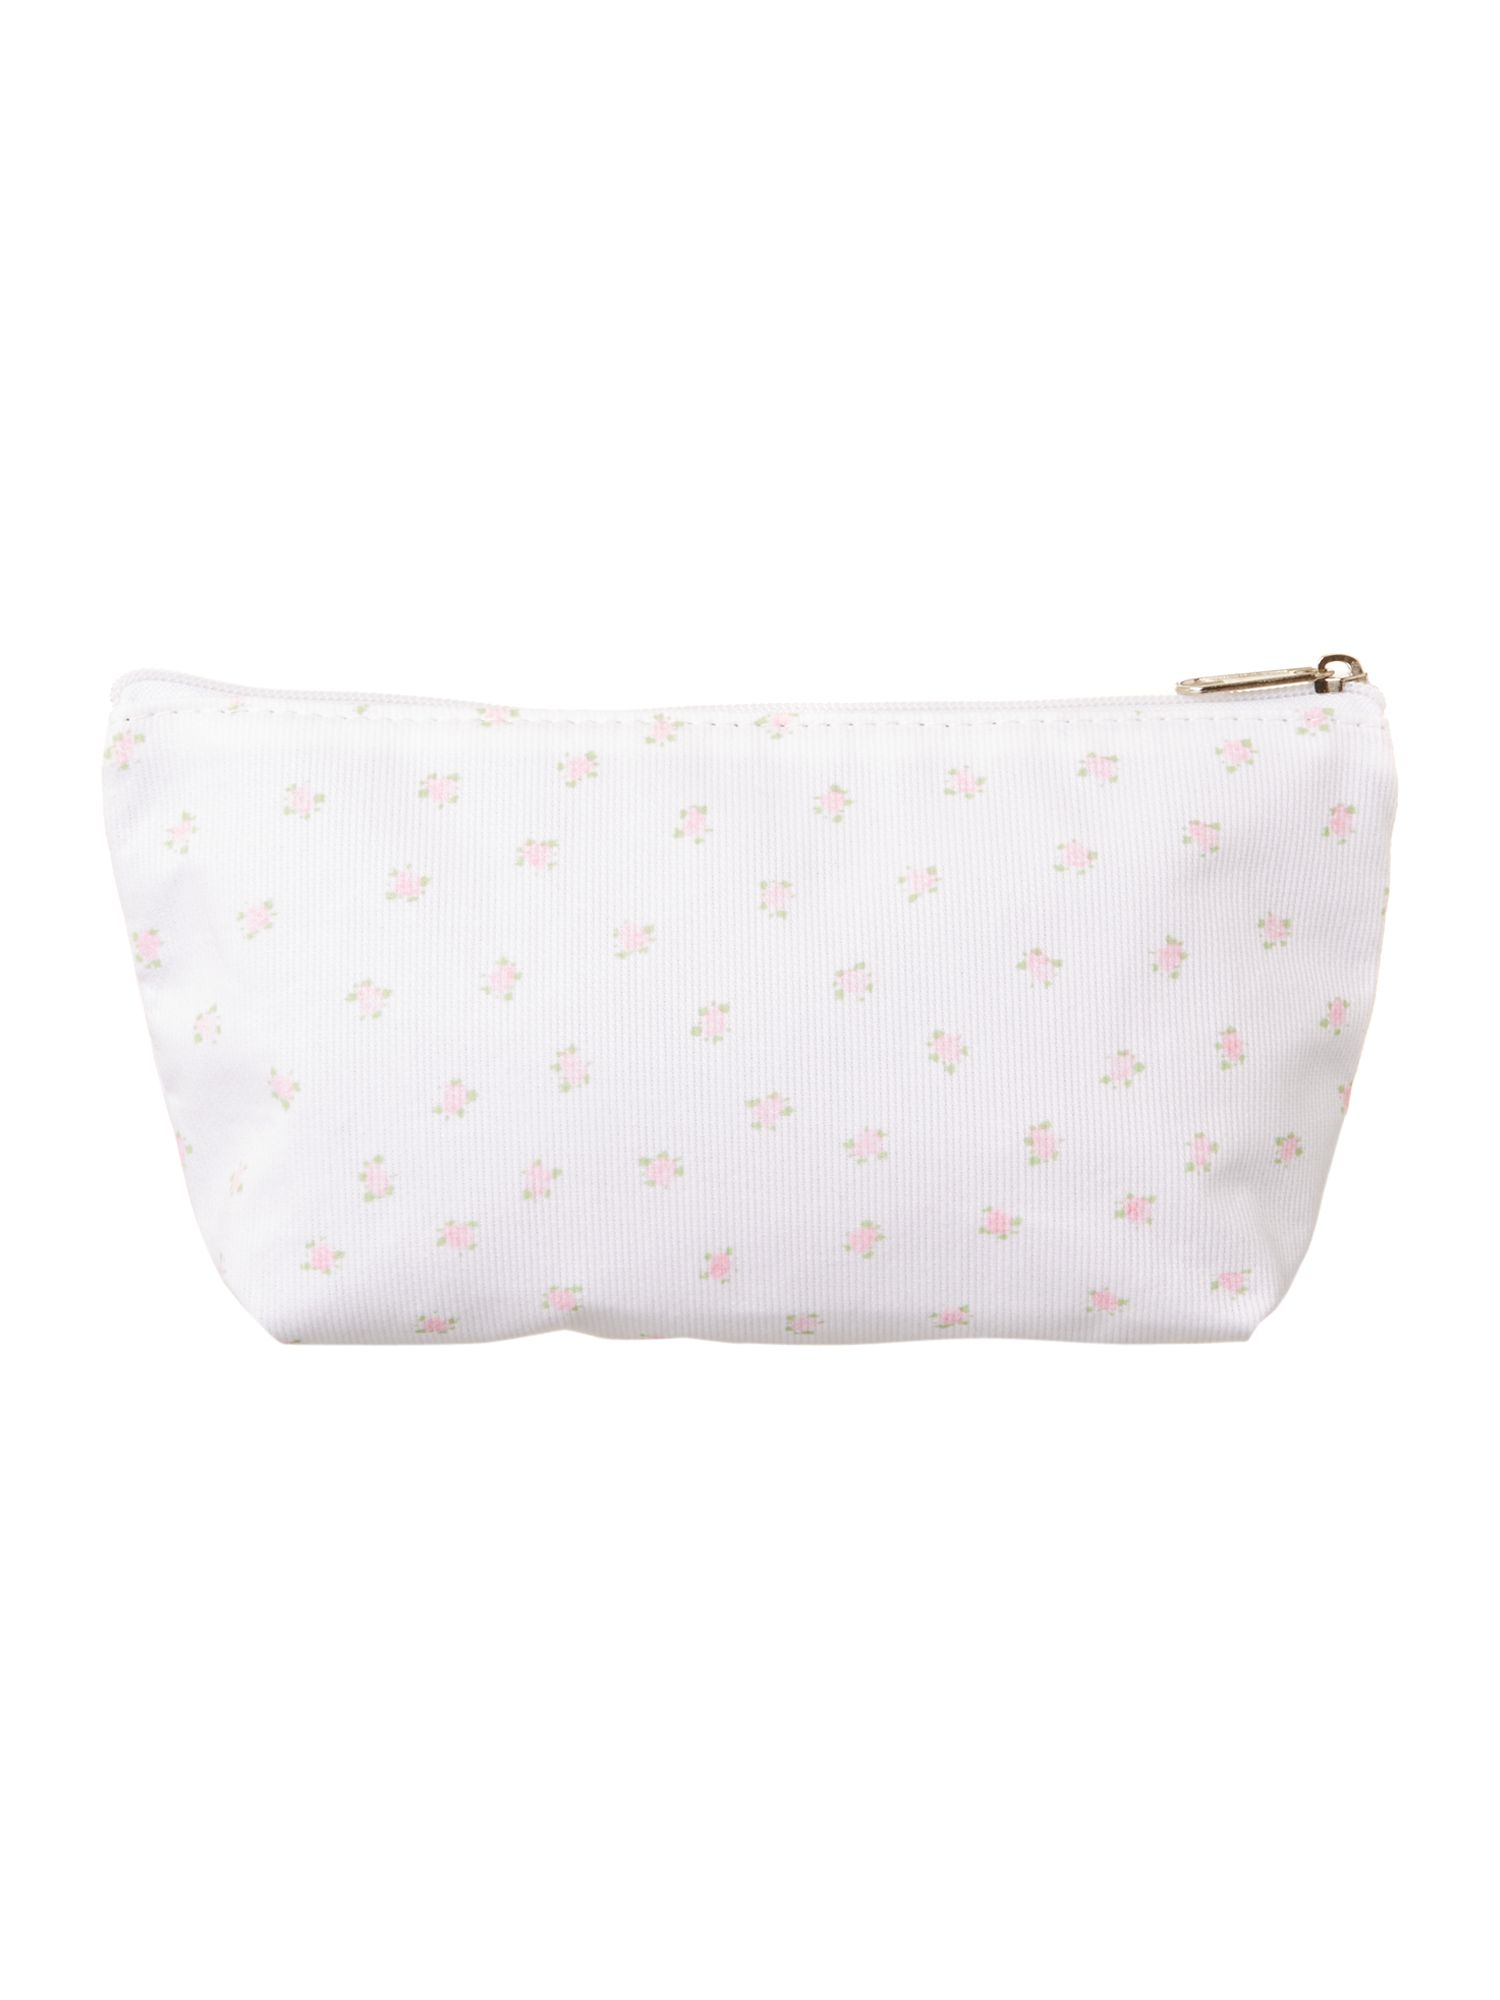 Pretty ditsy floral make-up bag